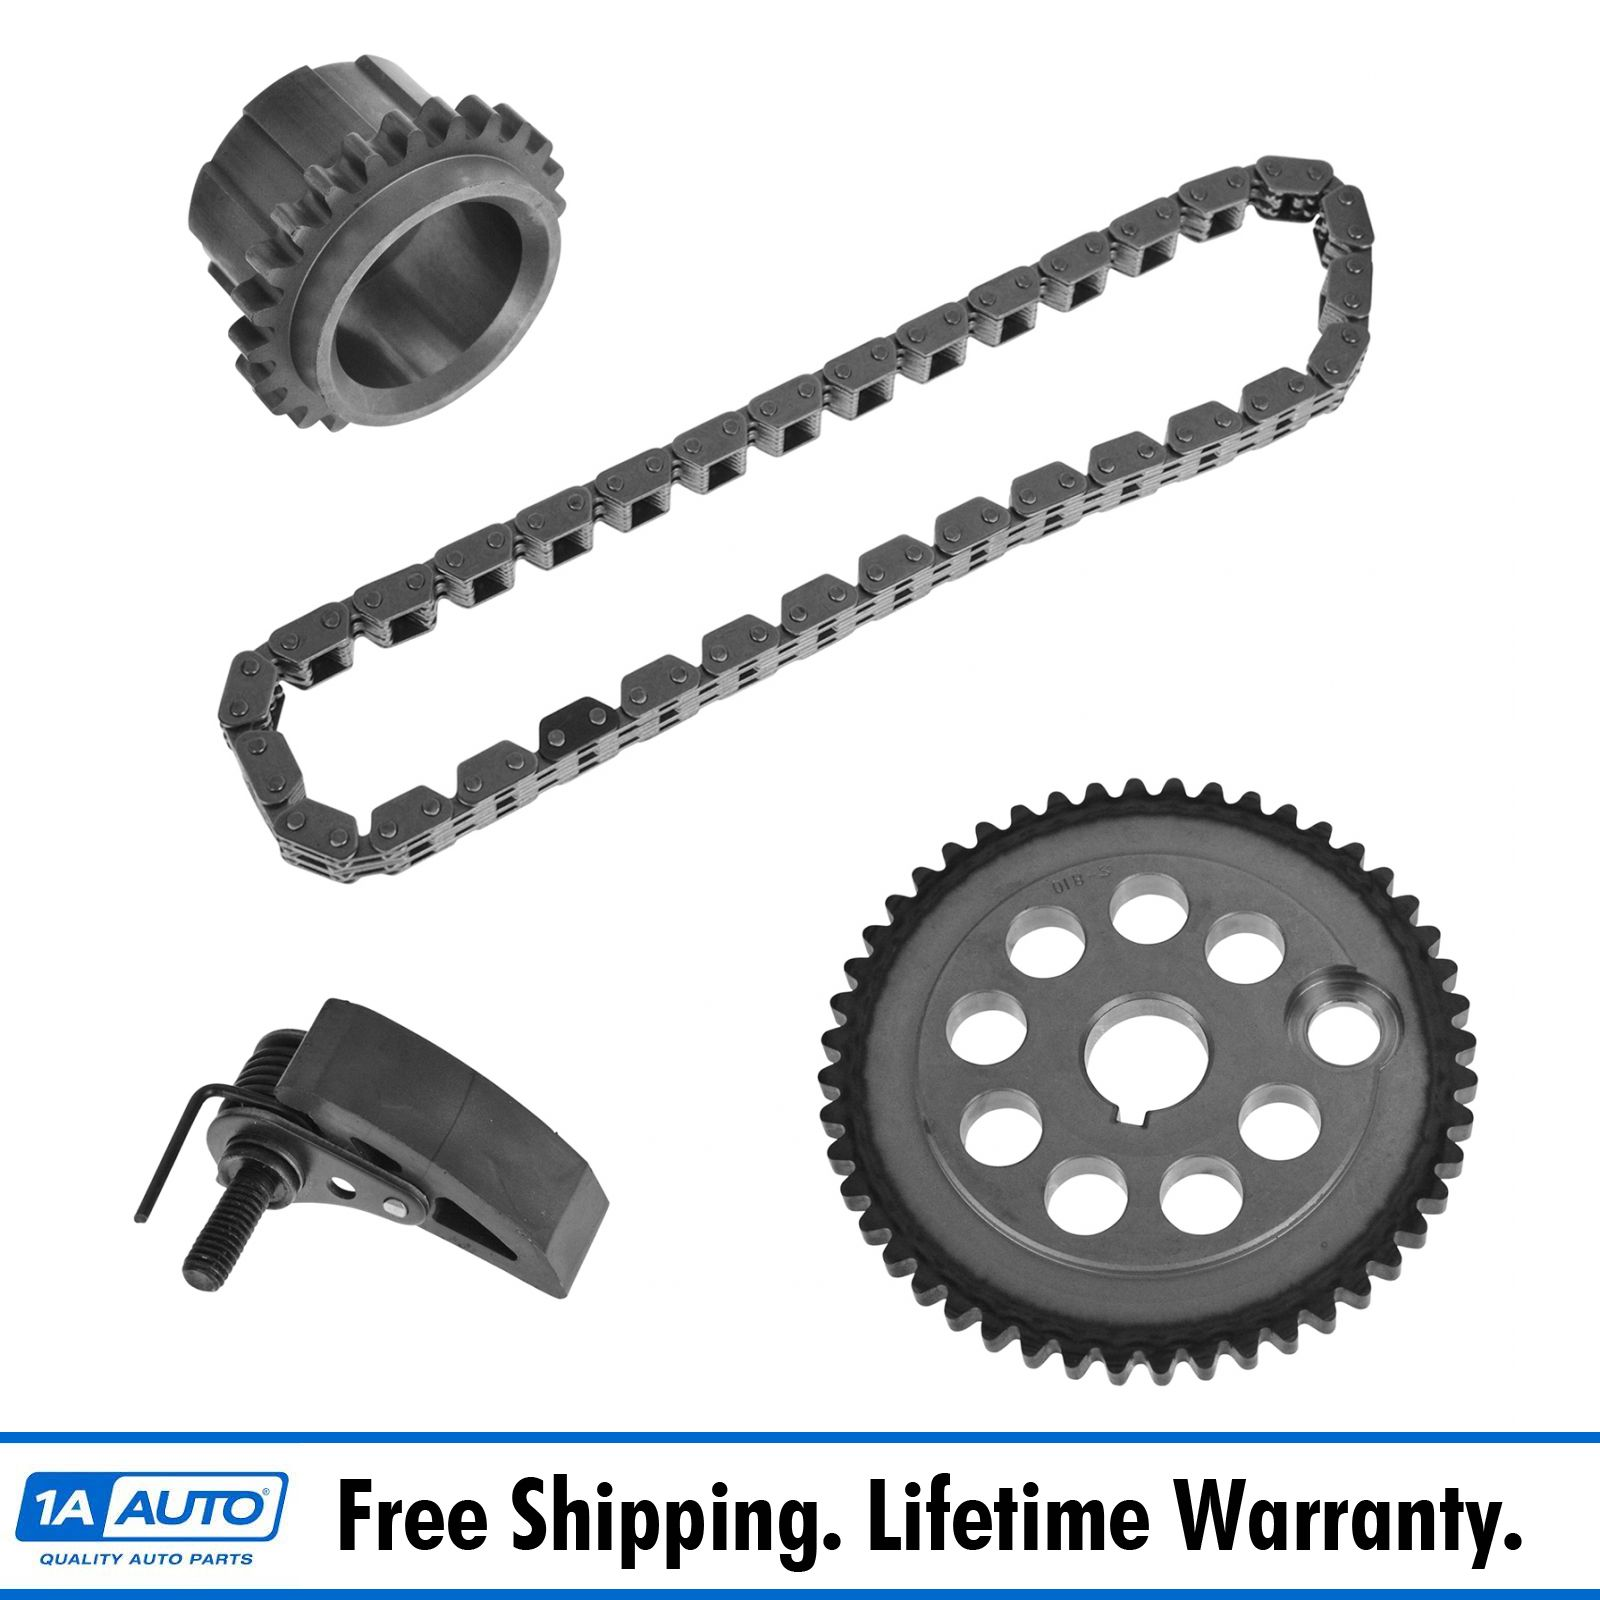 Details about Timing Chain Kit Set for Buick Chevy Oldsmobile Pontiac on